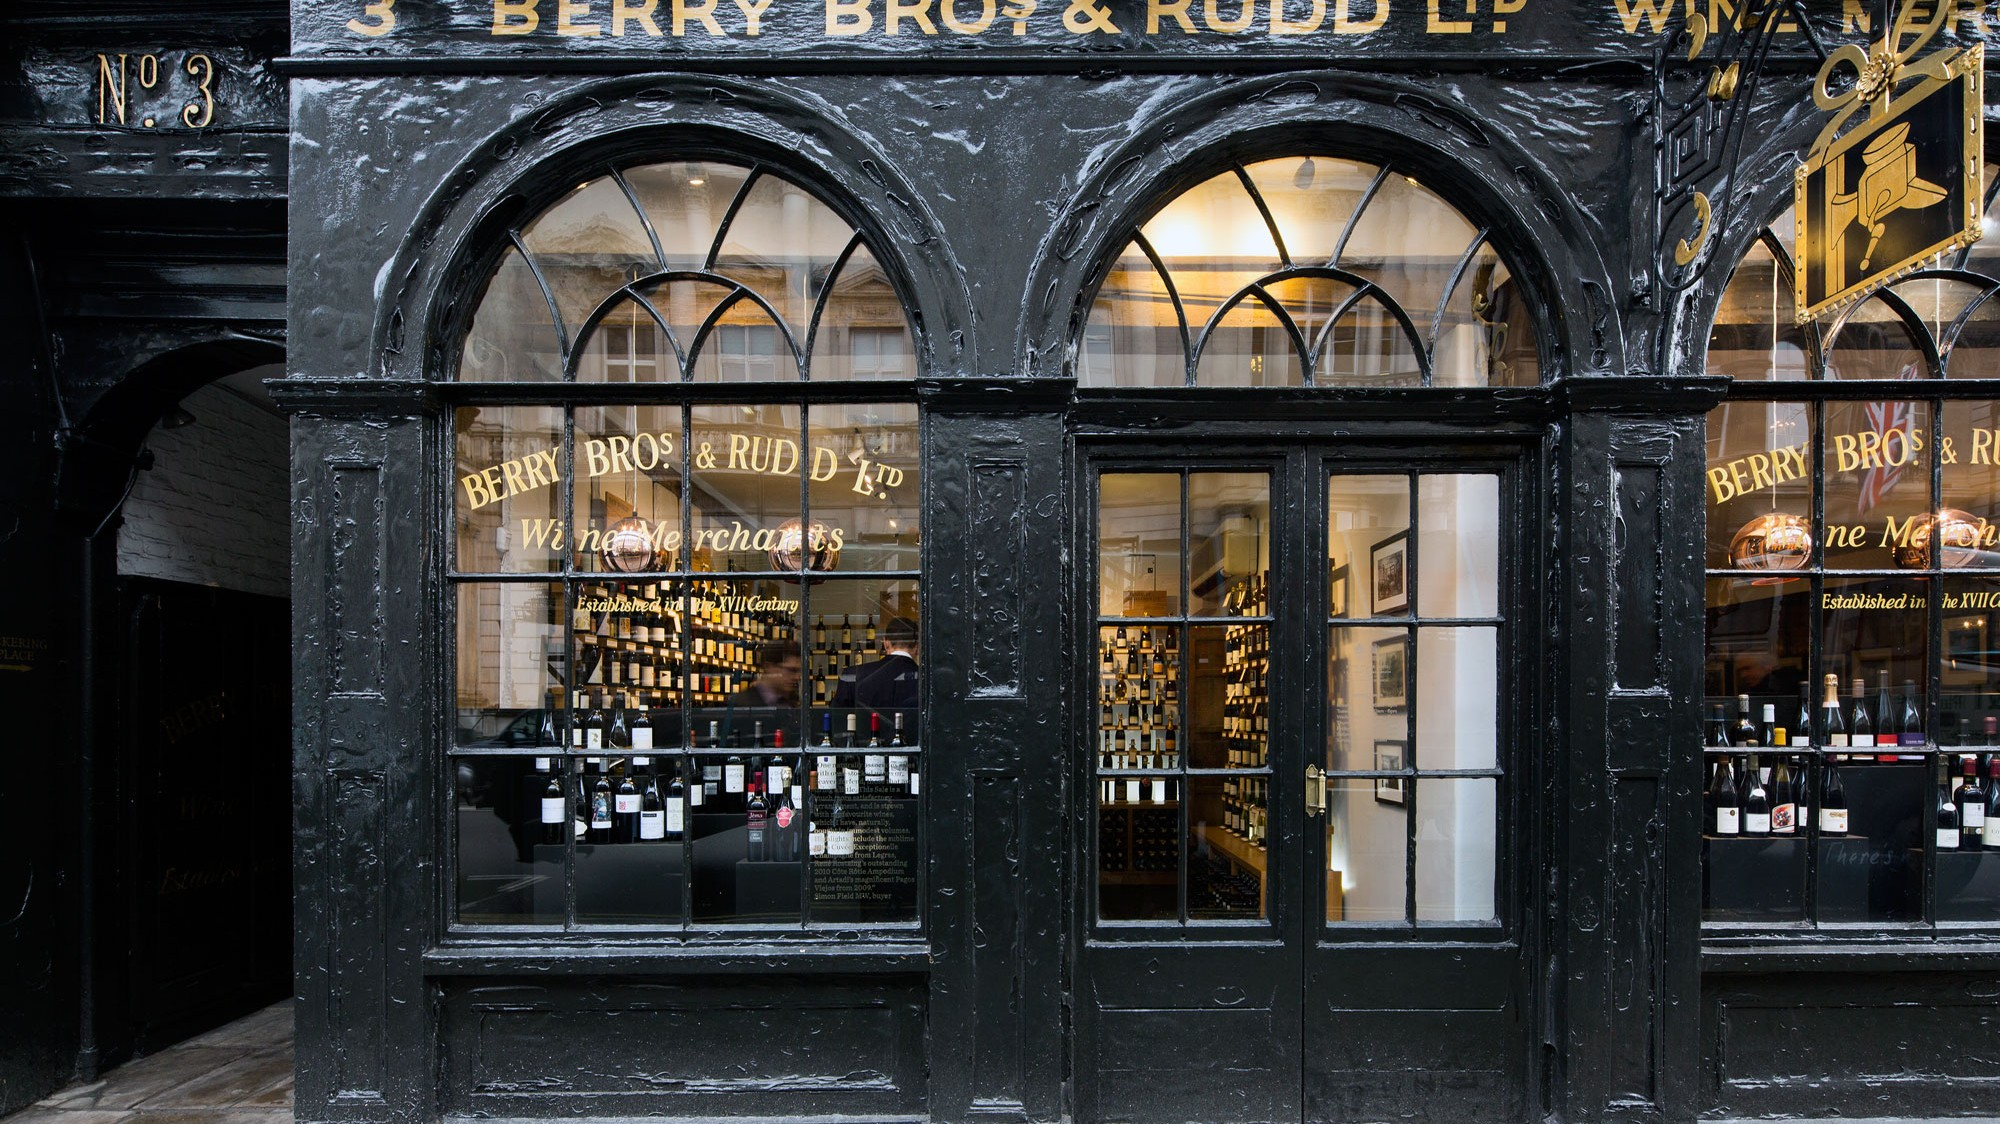 BBr-wine-merchants